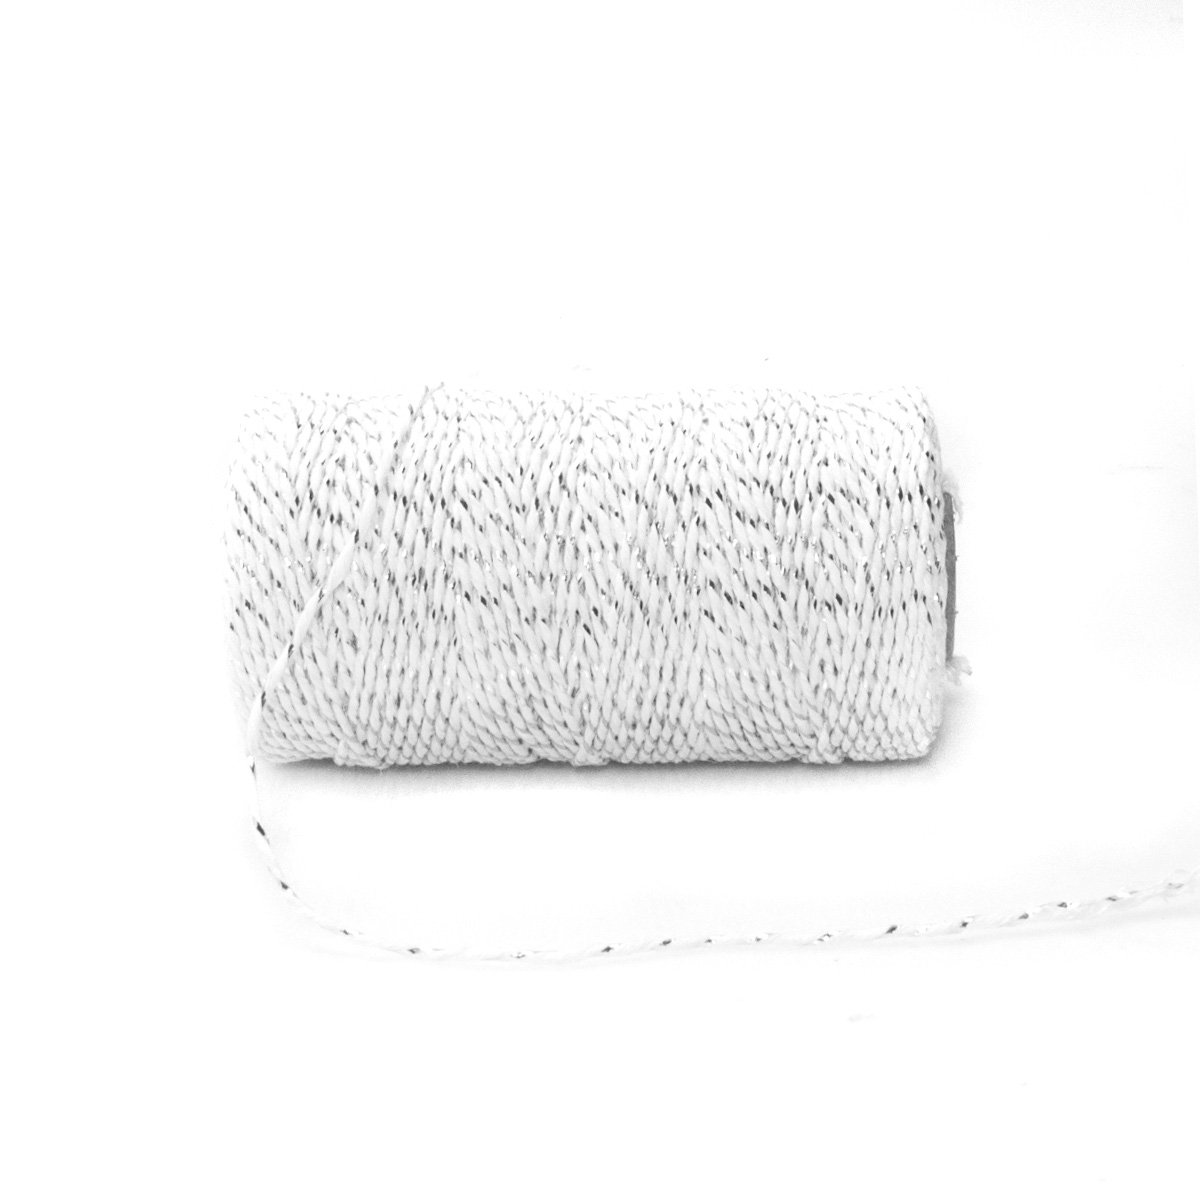 Mimi Pack Cotton Bakers Twine Silver